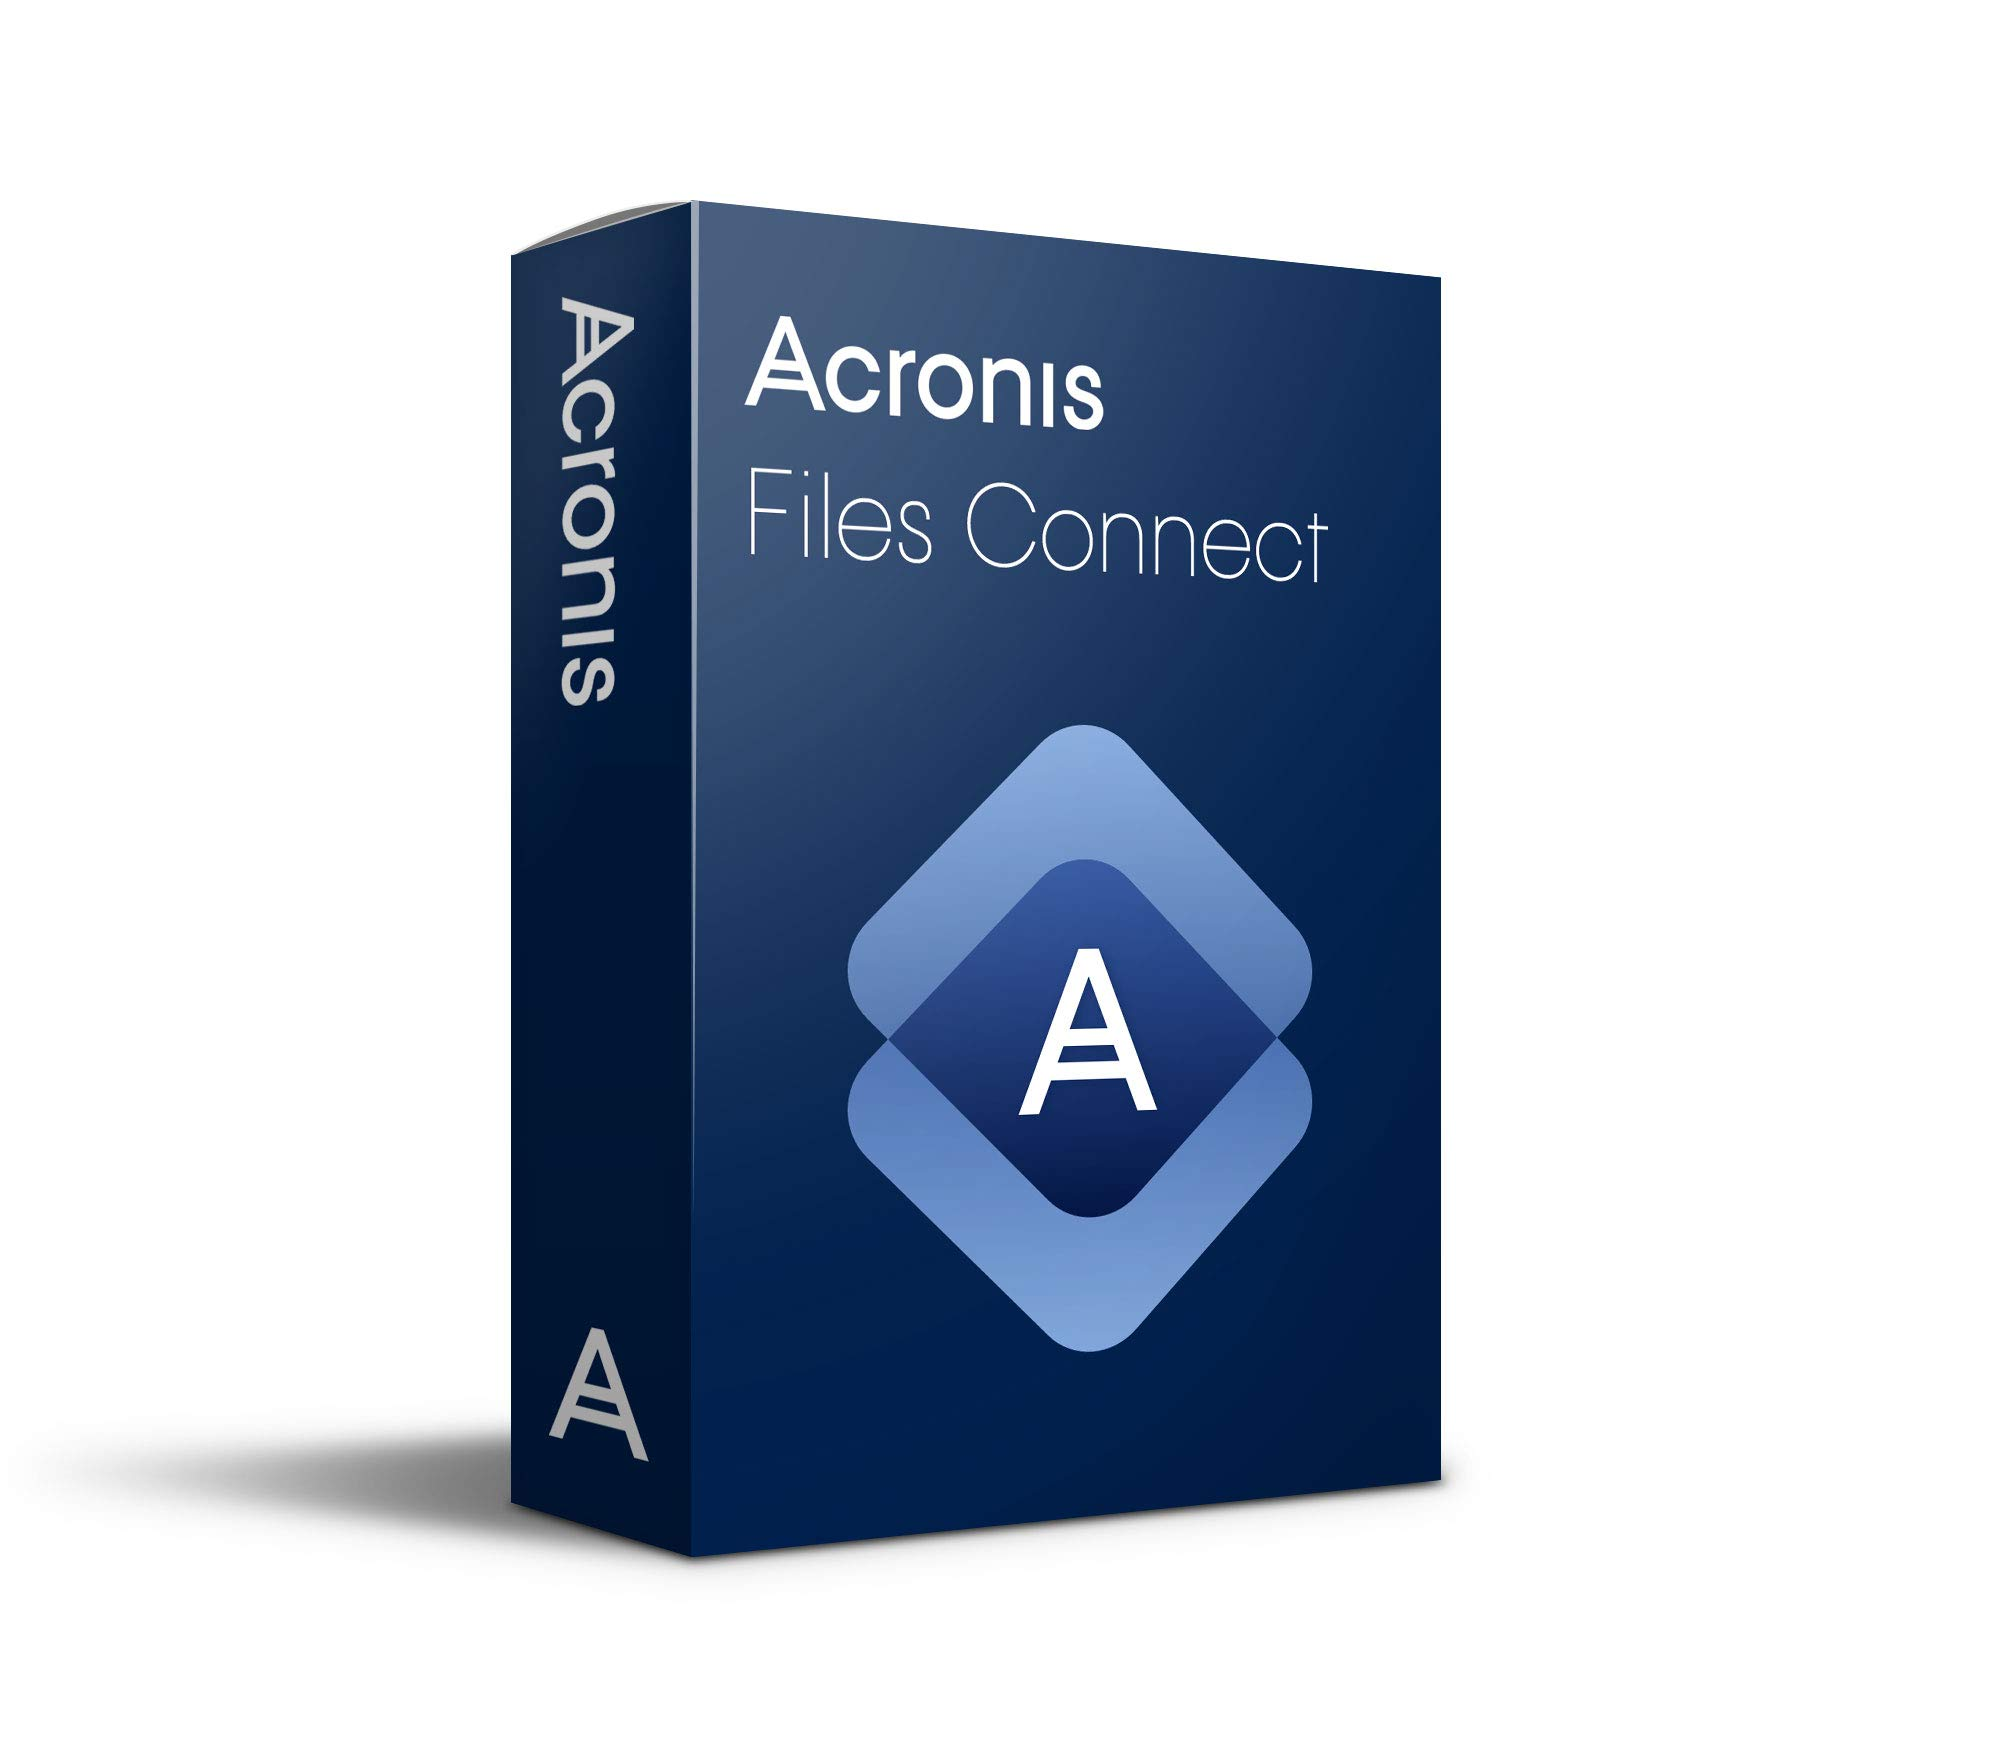 Acronis | EZSHLAENS11 | Files Connect 3-Client Server - incl. 3 years of support, price per server by Acronis